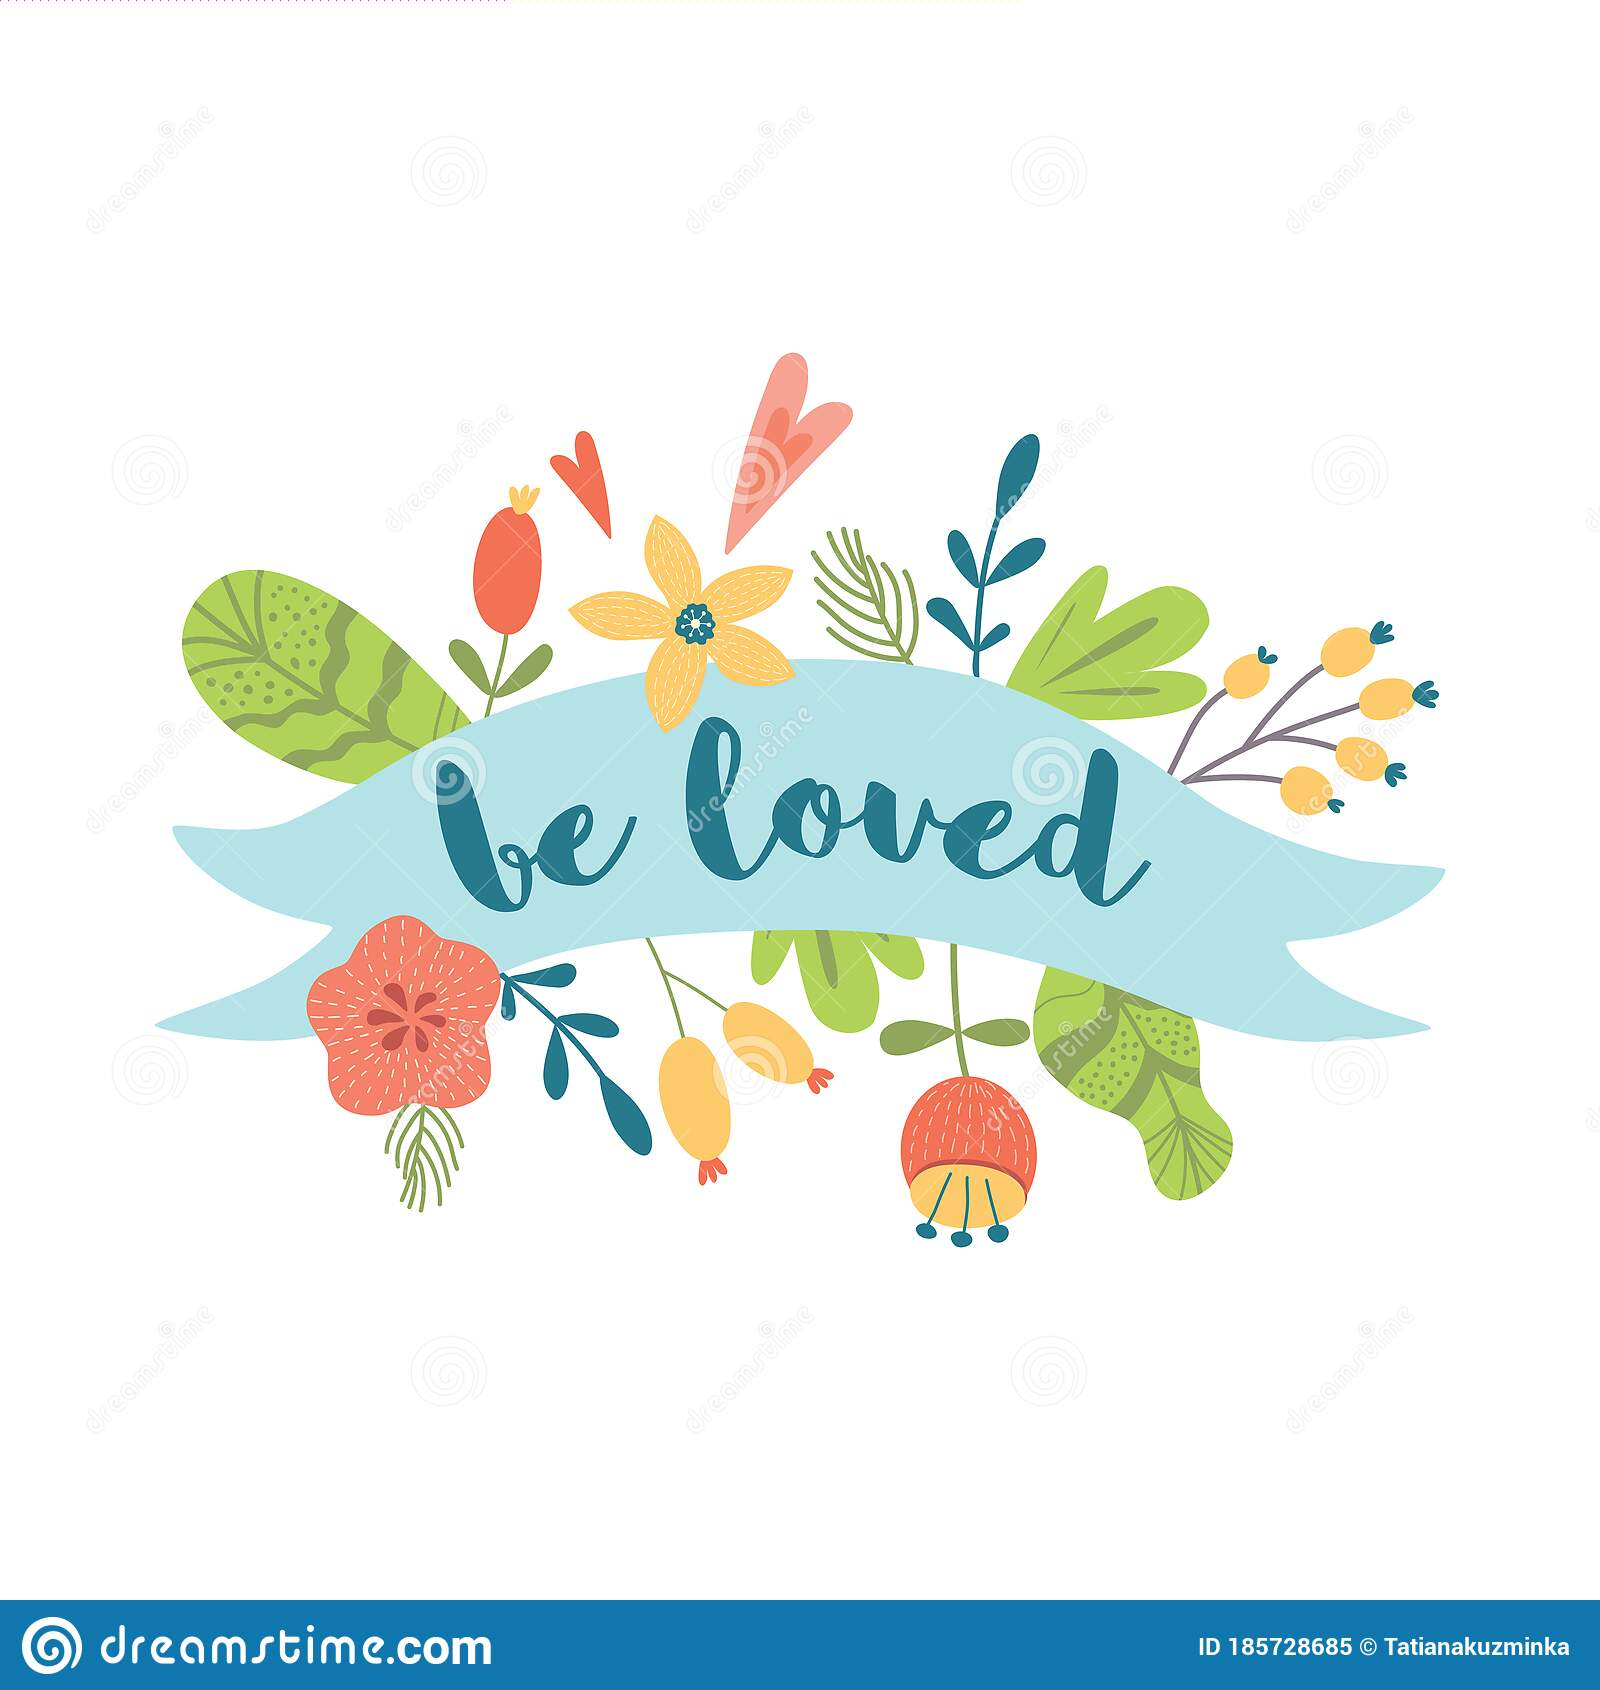 be loved text congratulation banner with ribbon flowers